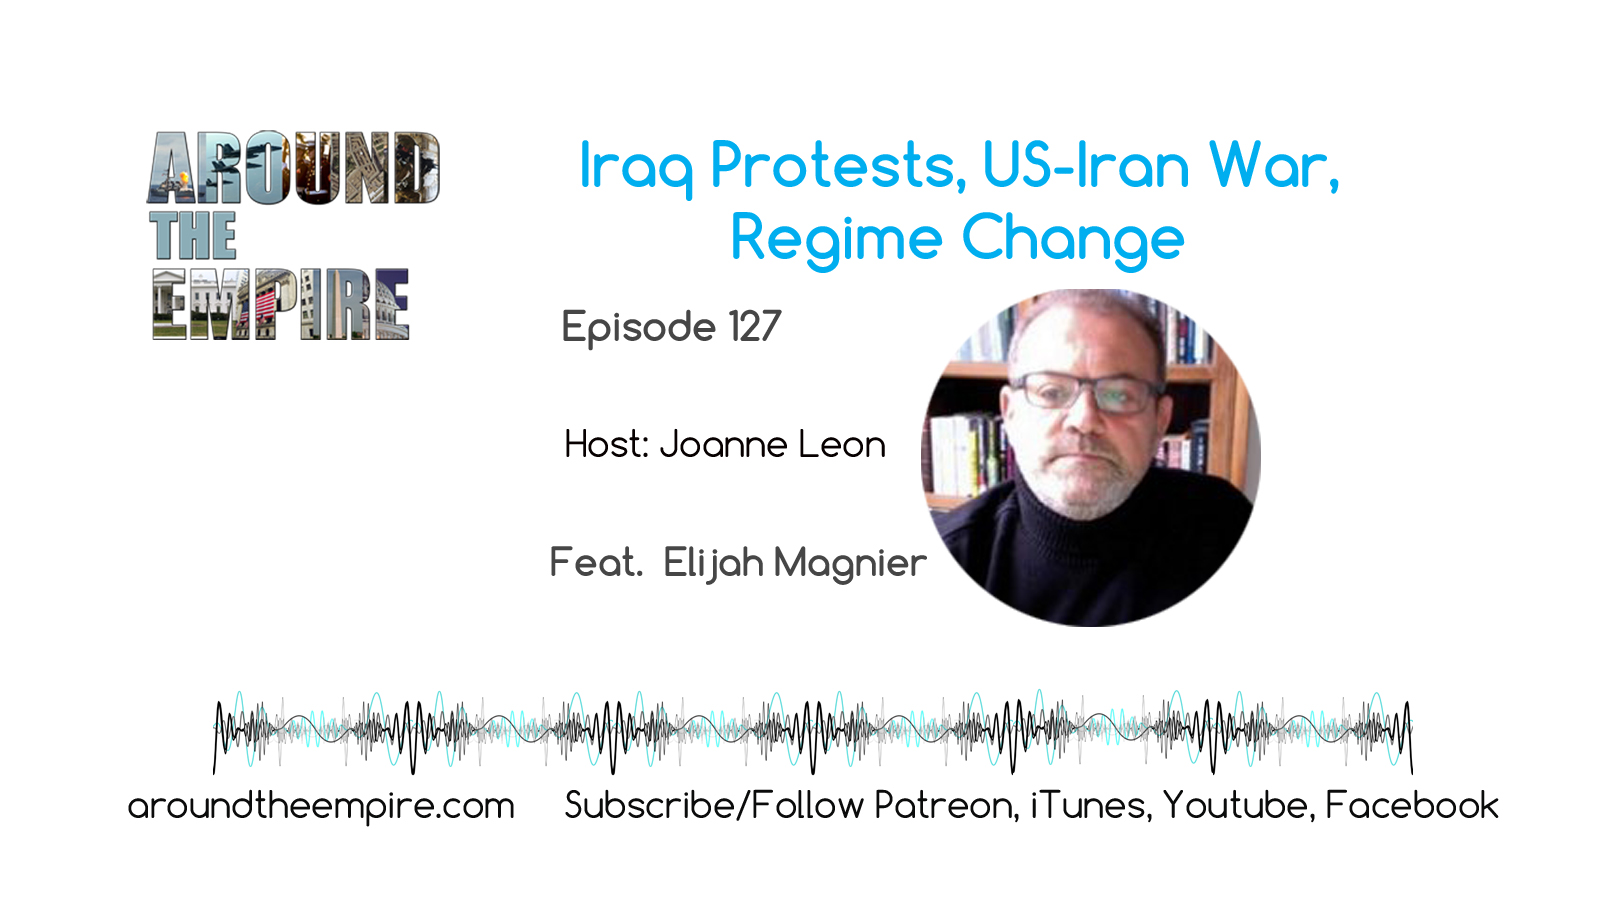 Ep 127 Iraq protests, US-Iran war, regime change